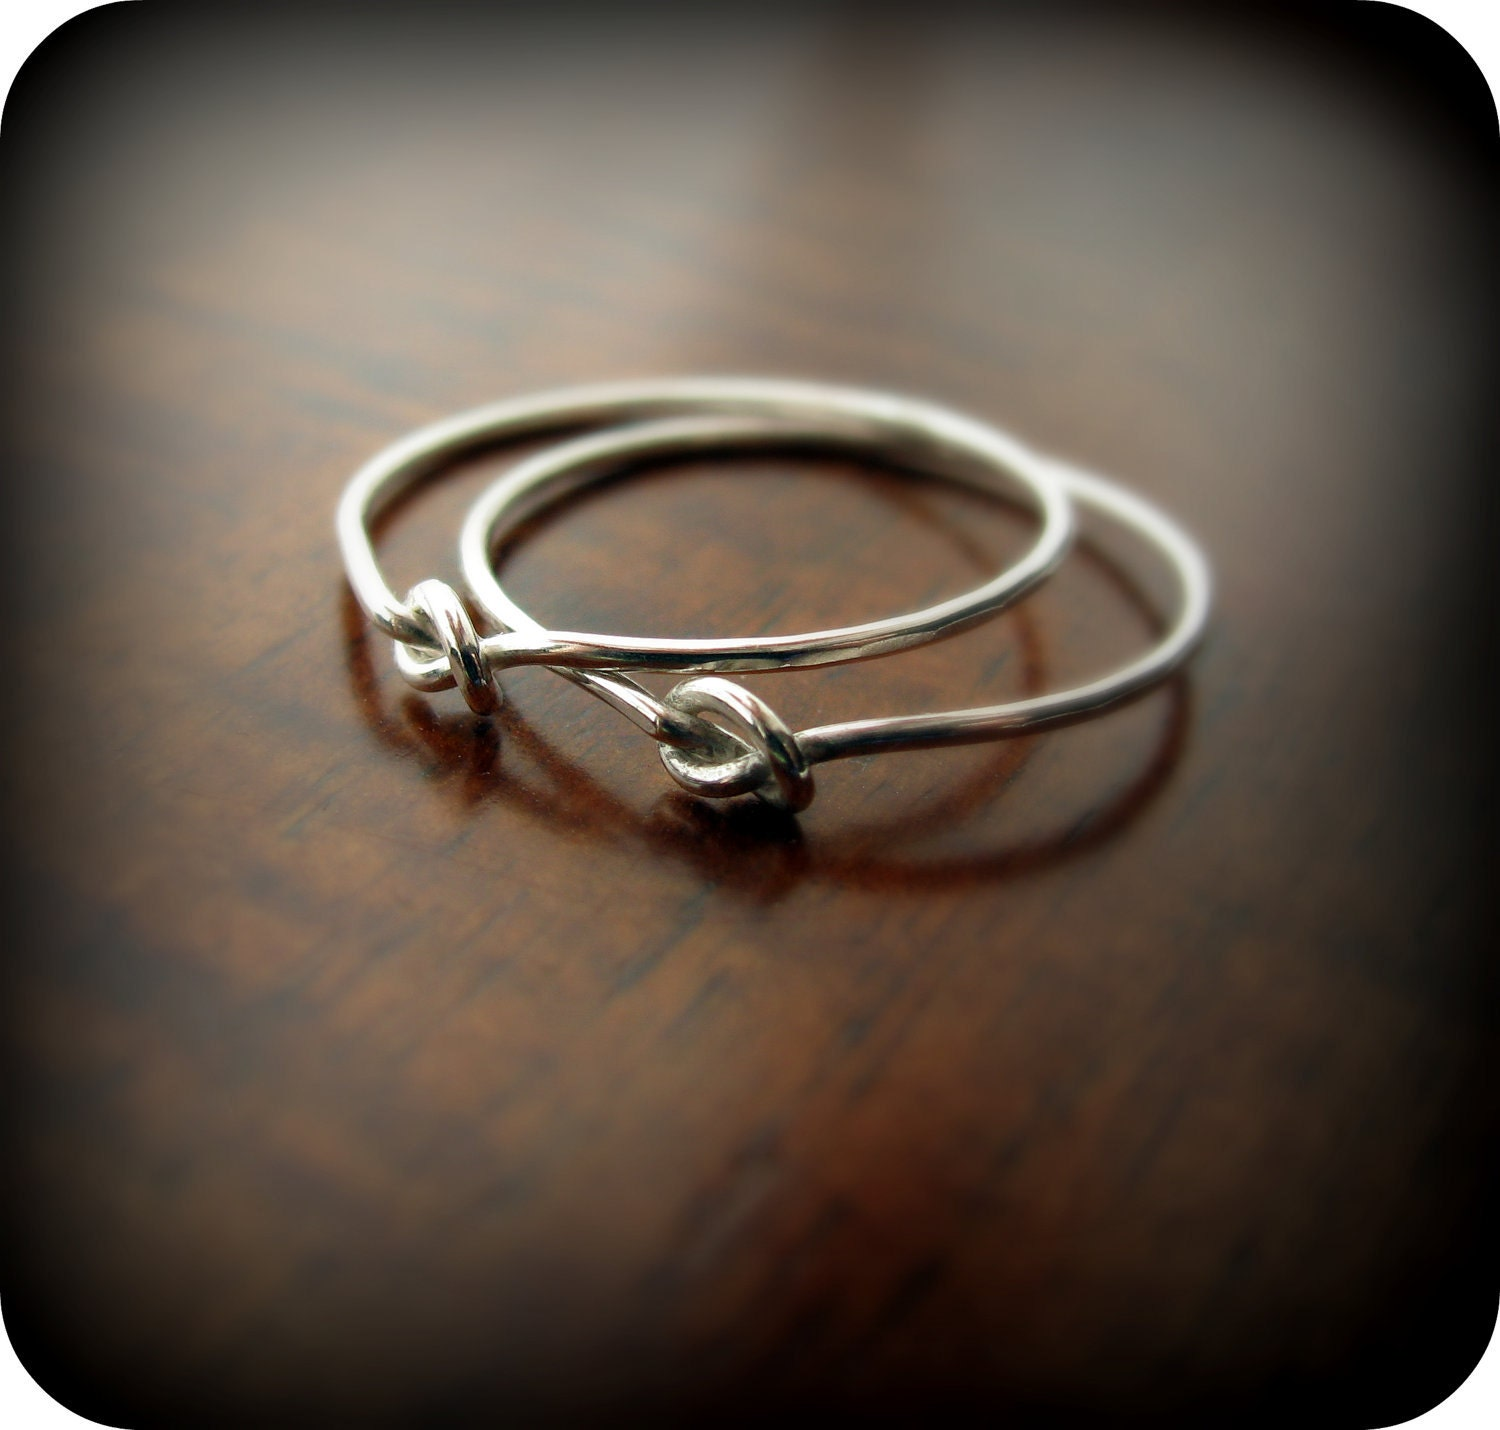 Friendship knot rings - best friends sterling silver rings